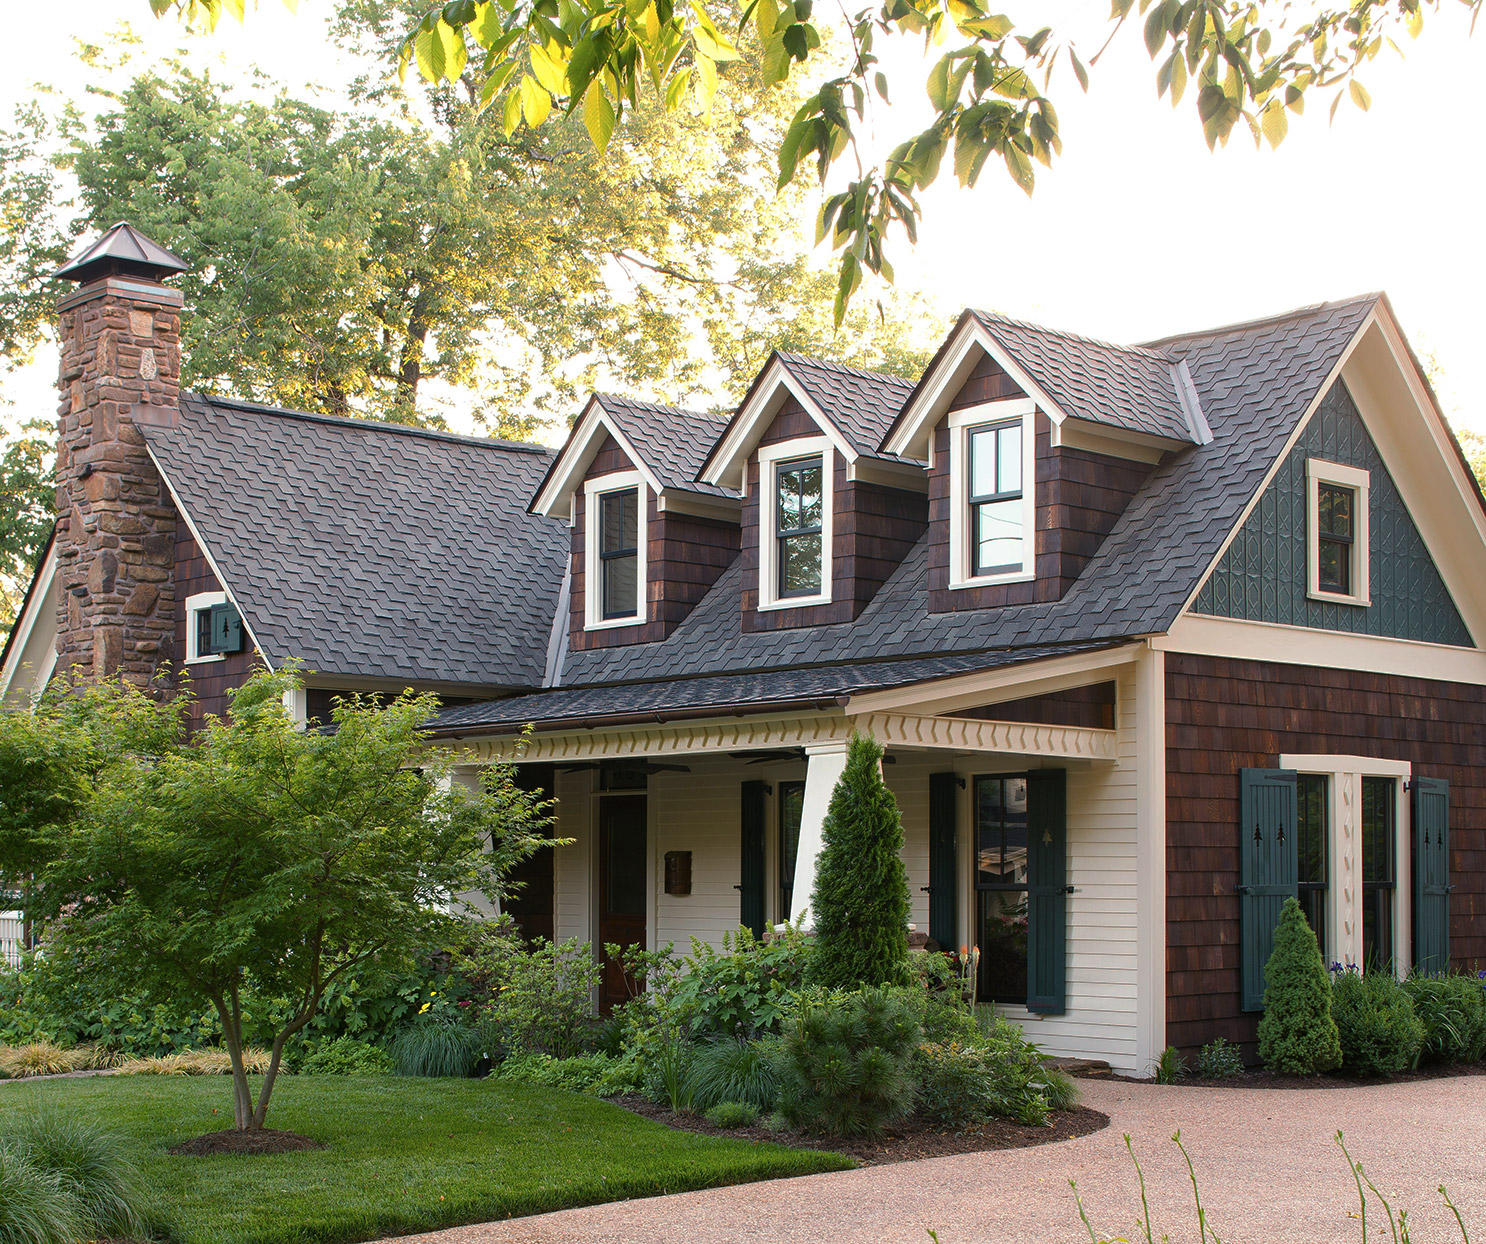 earthy colors cottage-style home